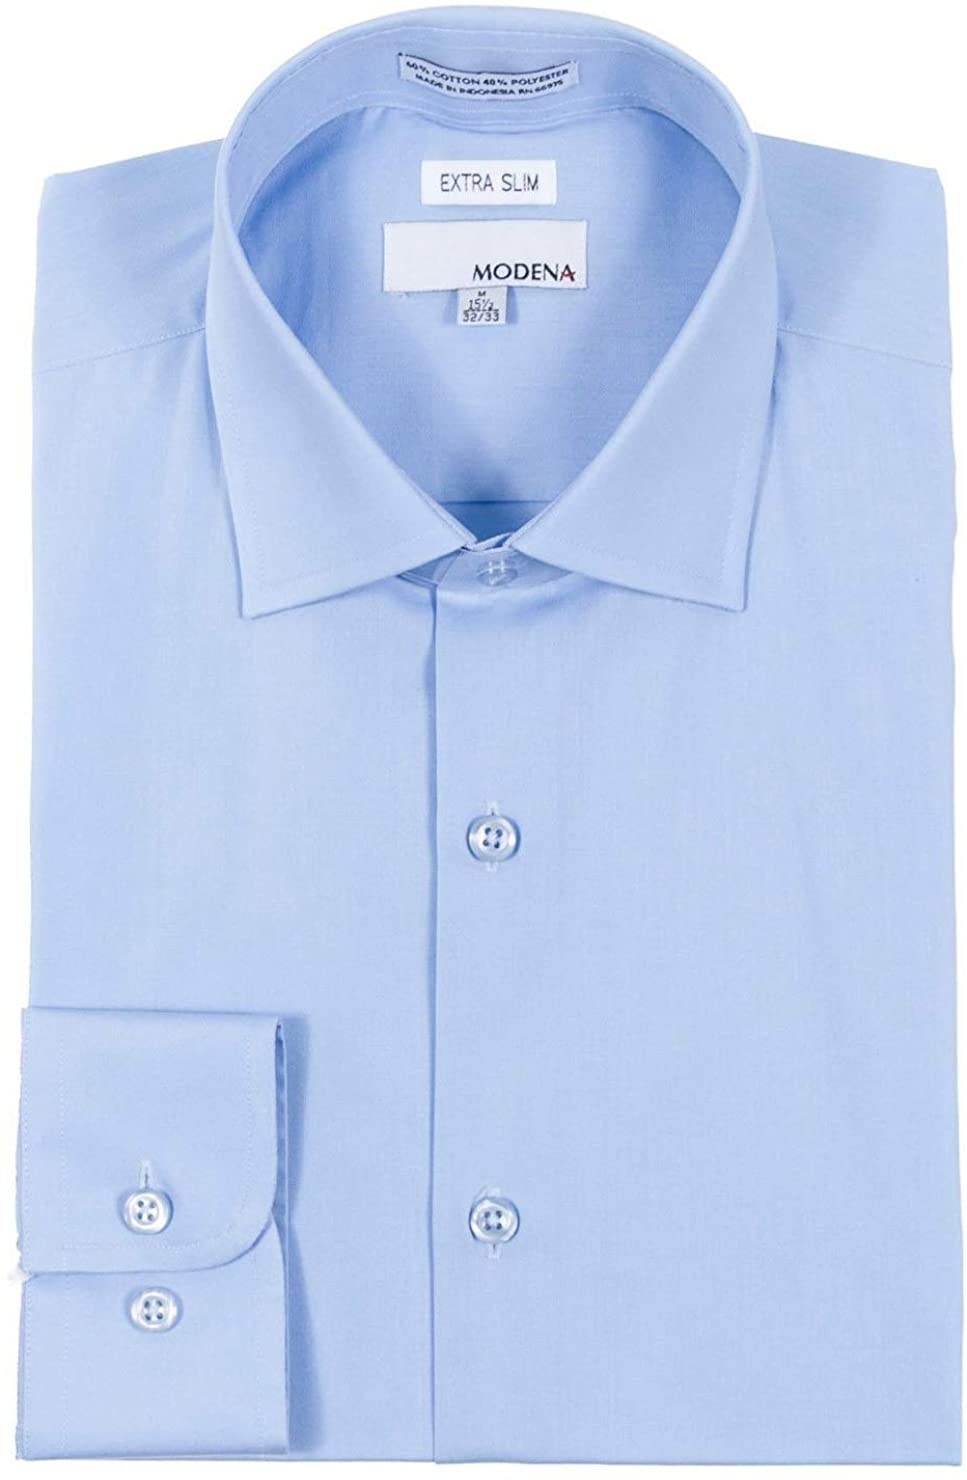 Modena Men's Extra Slim Fit Long Sleeve Solid Dress Shirt - Colors